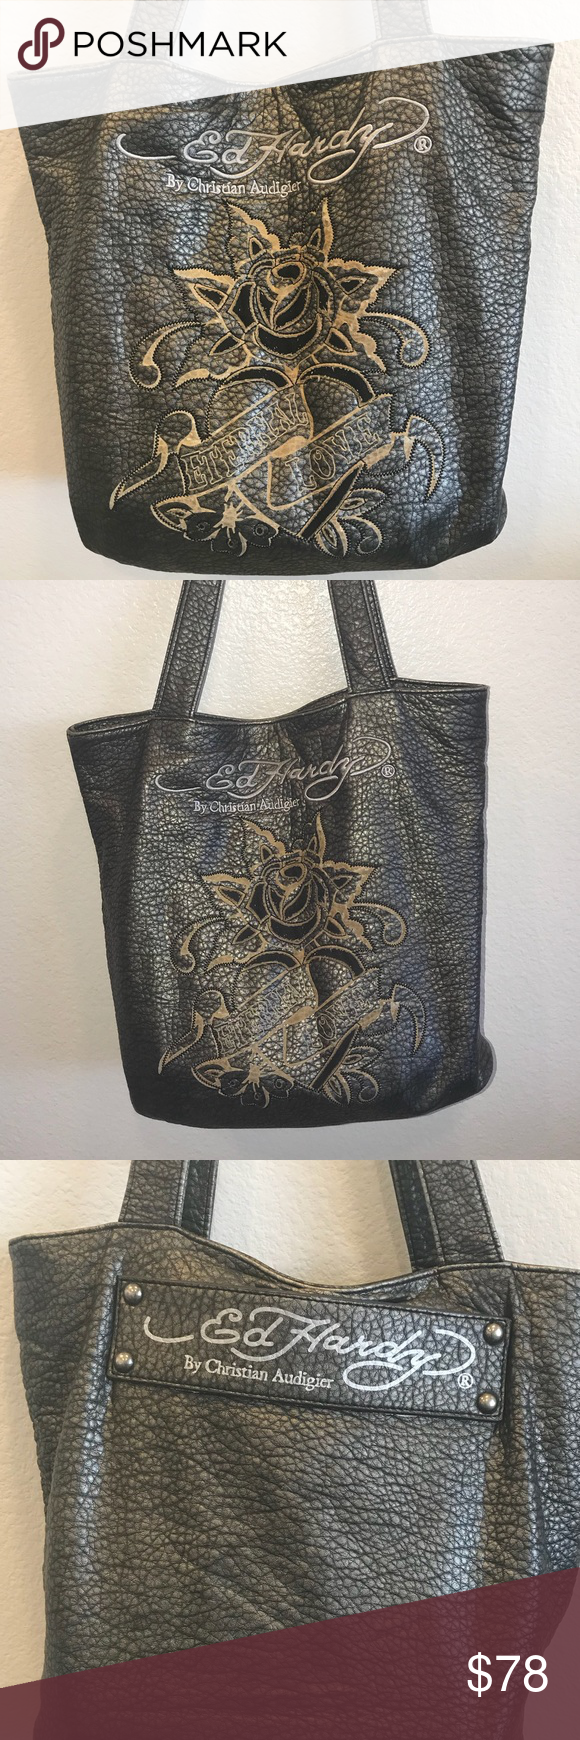 "df85bf9d84 Ed Hardy by Christian Audigier Handbag ""Eternal Love"" by Christian  Audigier. Distressed. Small Cut on Strap. Still soft and cool and a great  looking style ..."